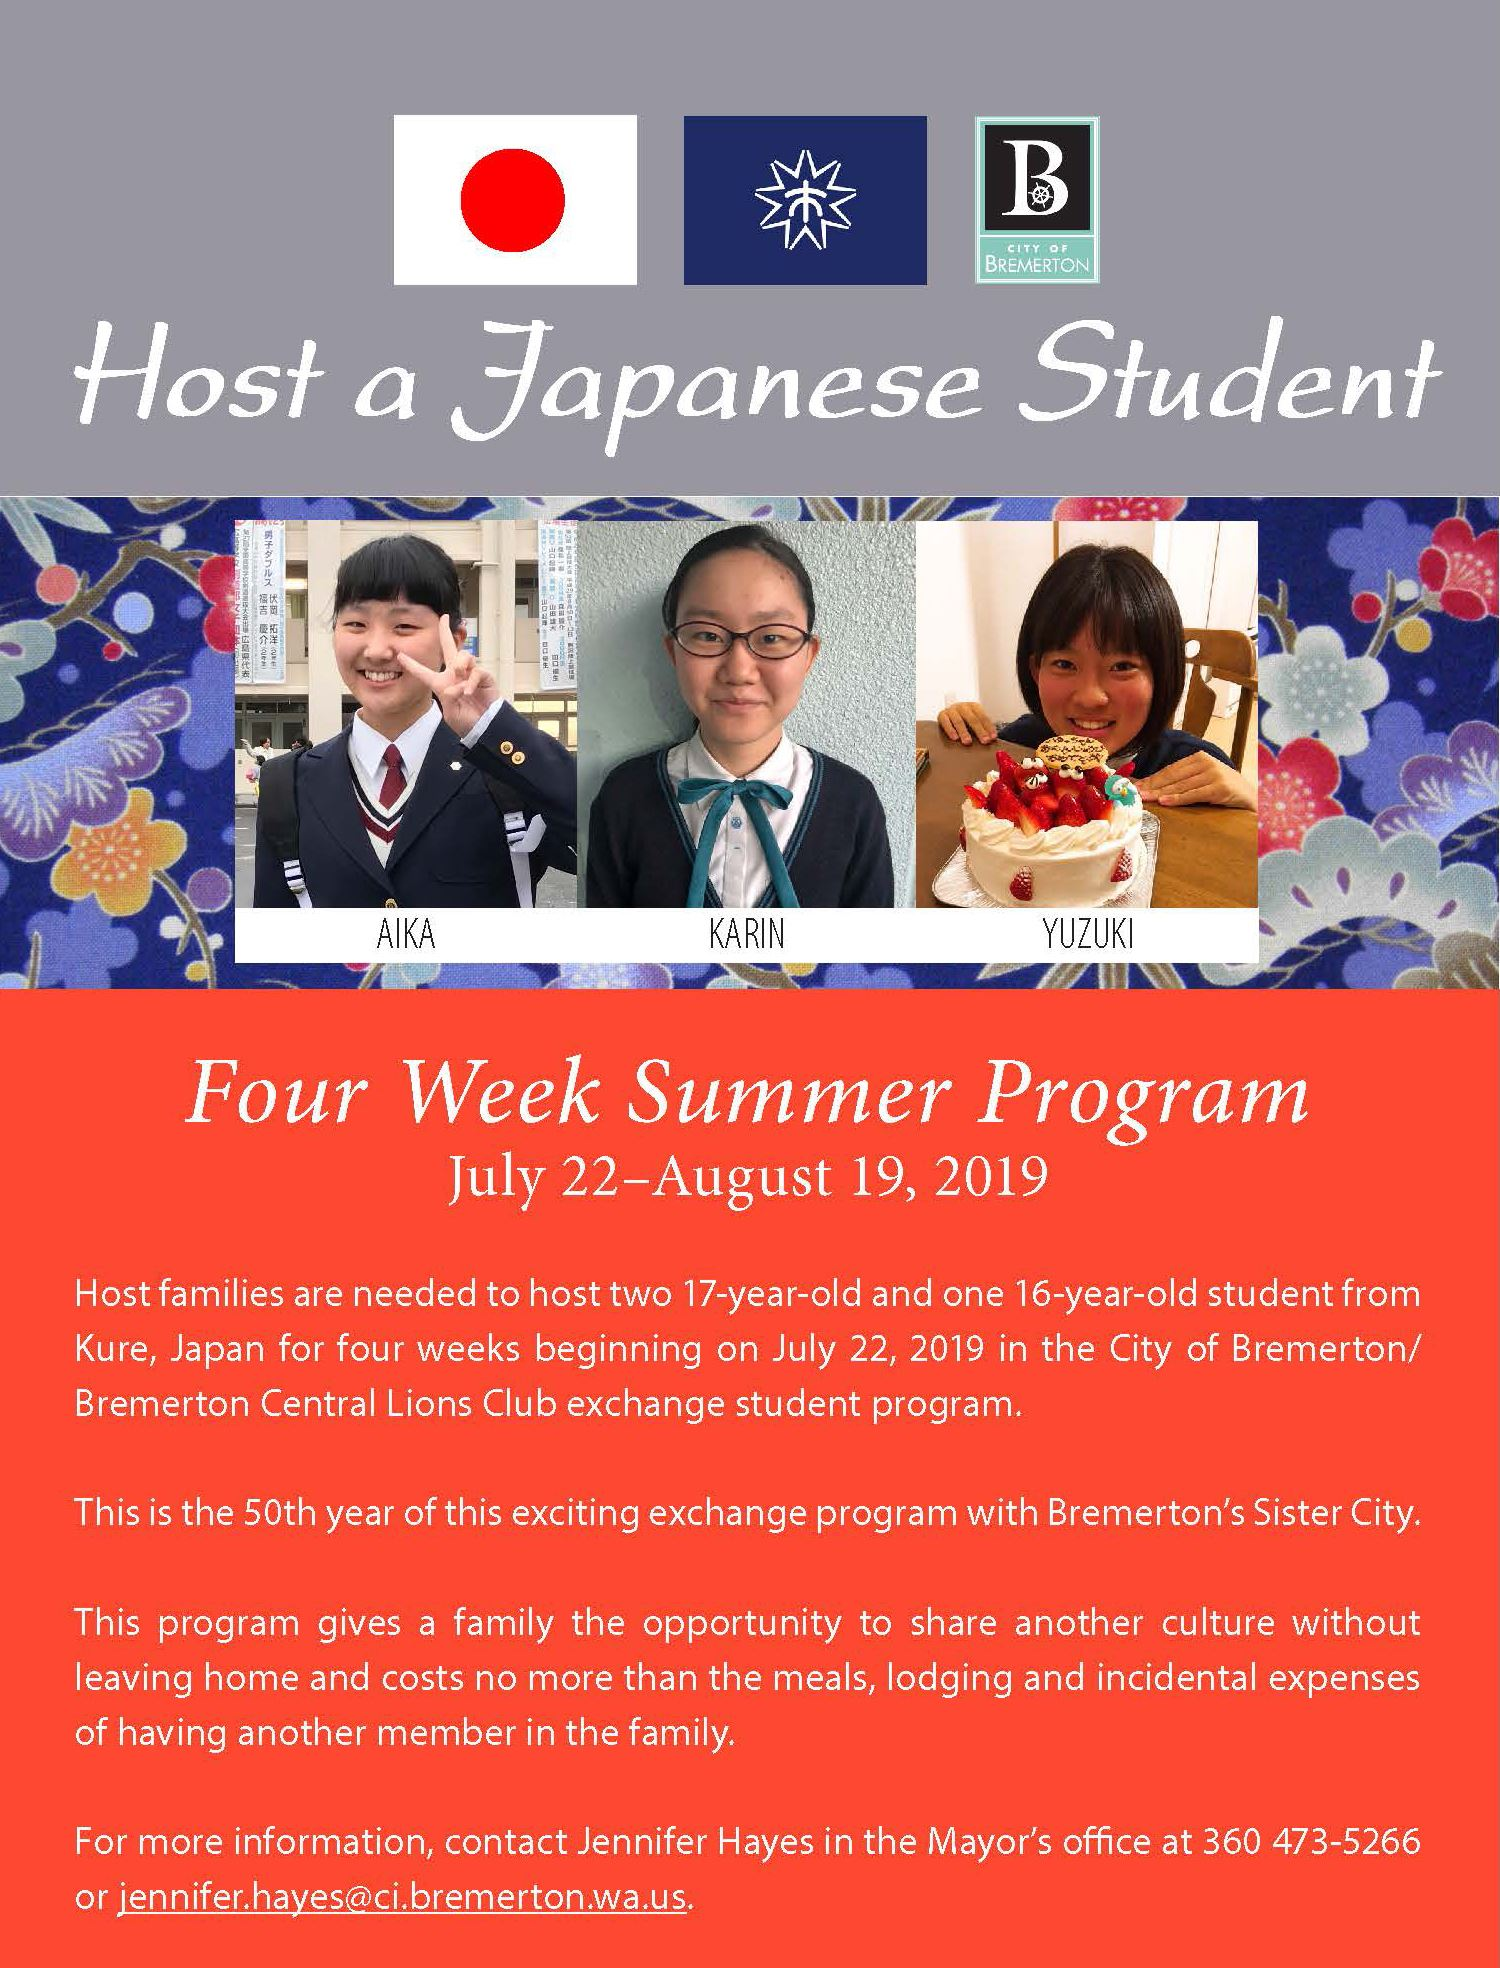 Host A Student 2019